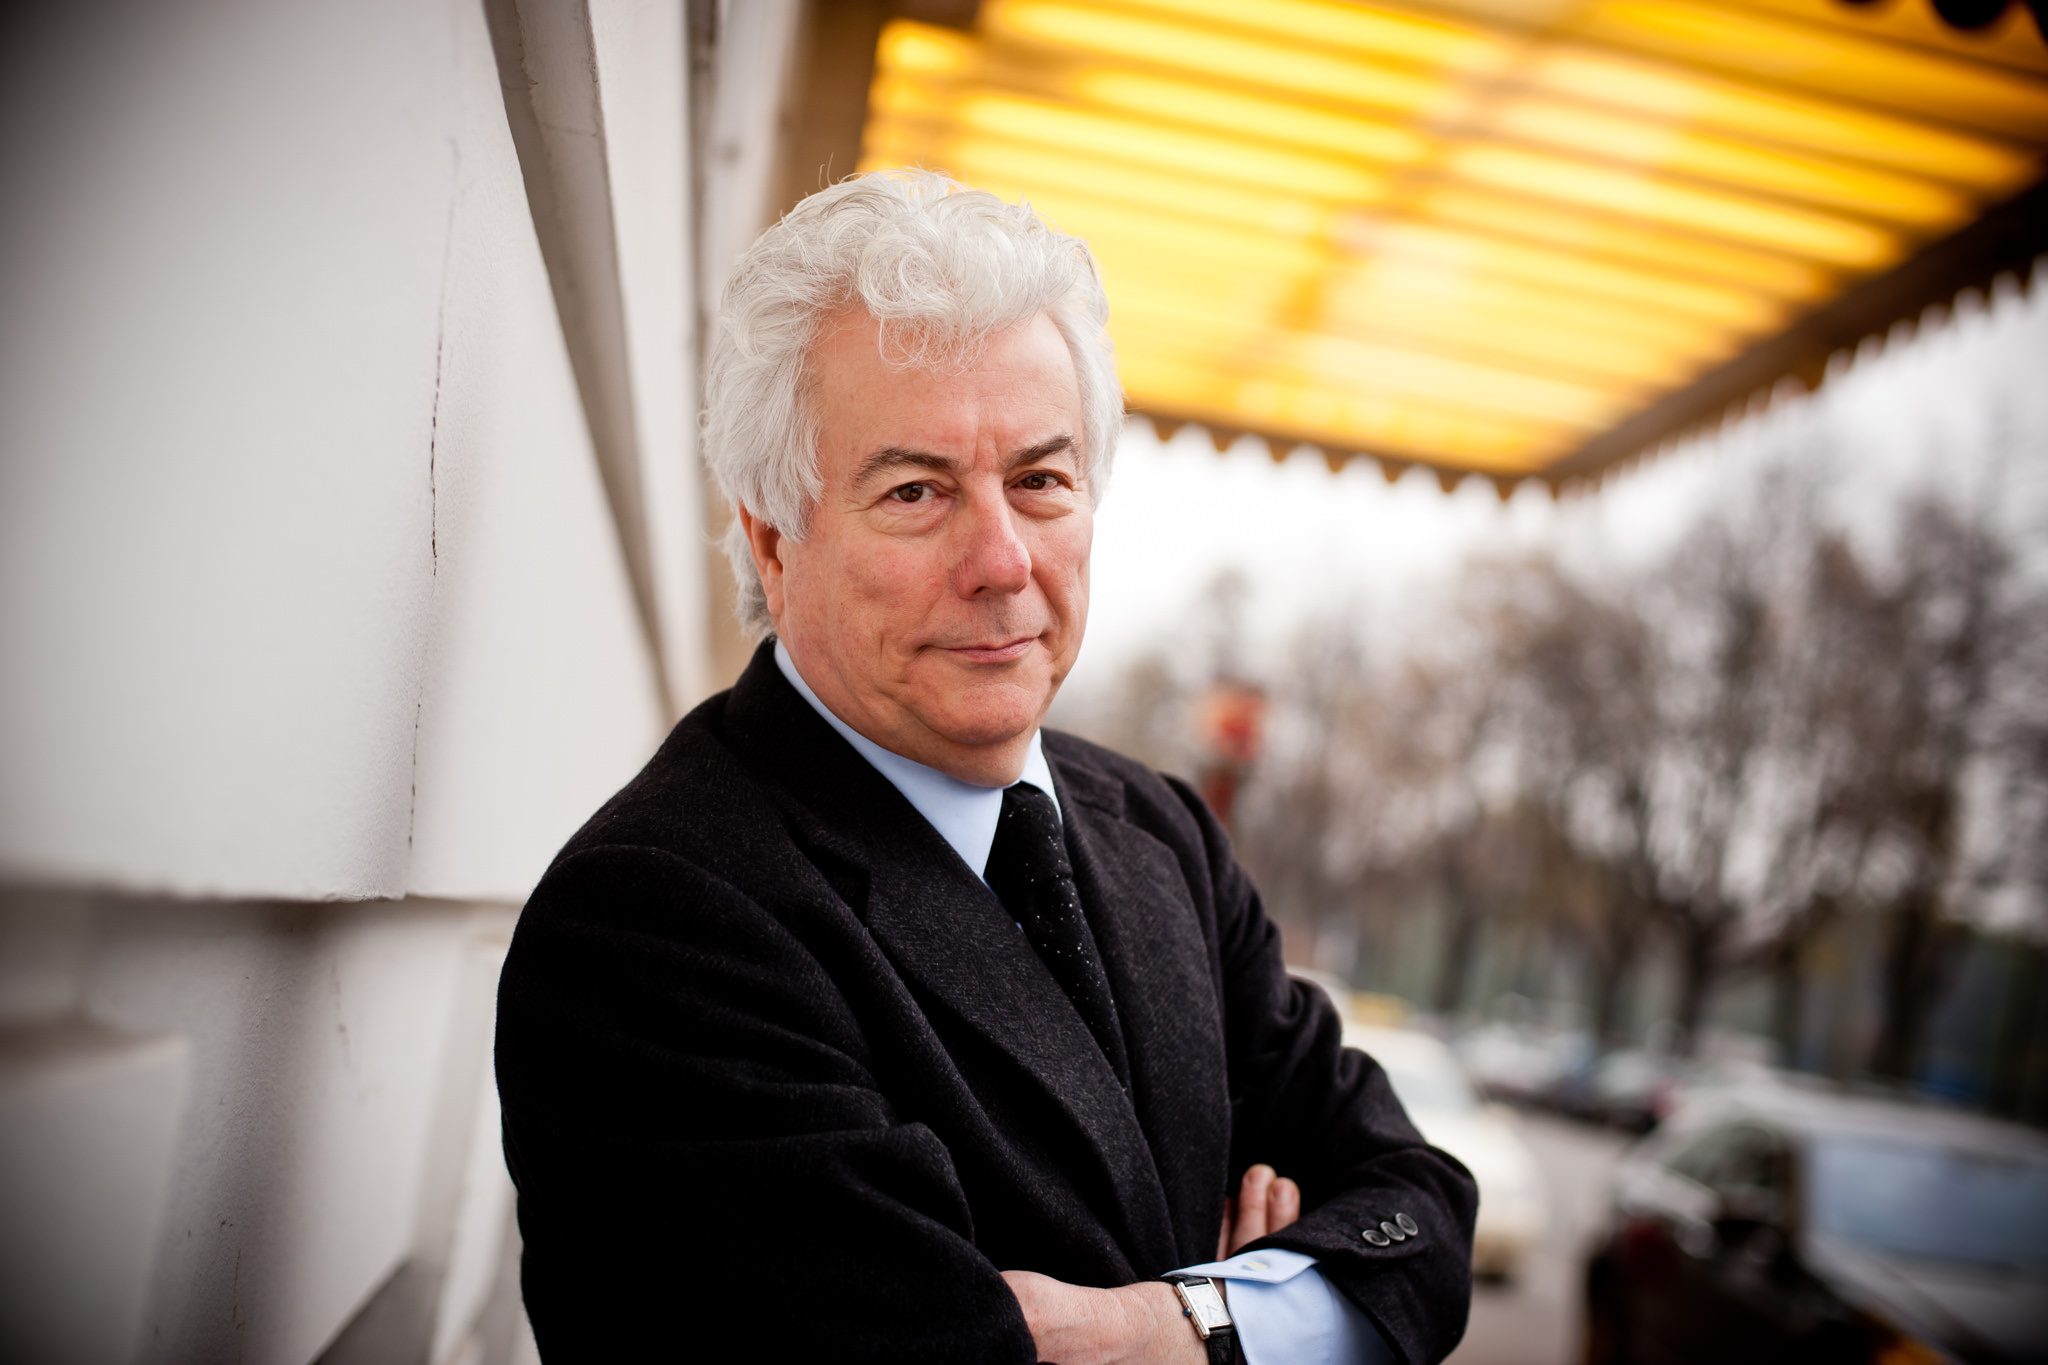 <span>KÖCHE&amp;GENUSS</span>Ken Follett